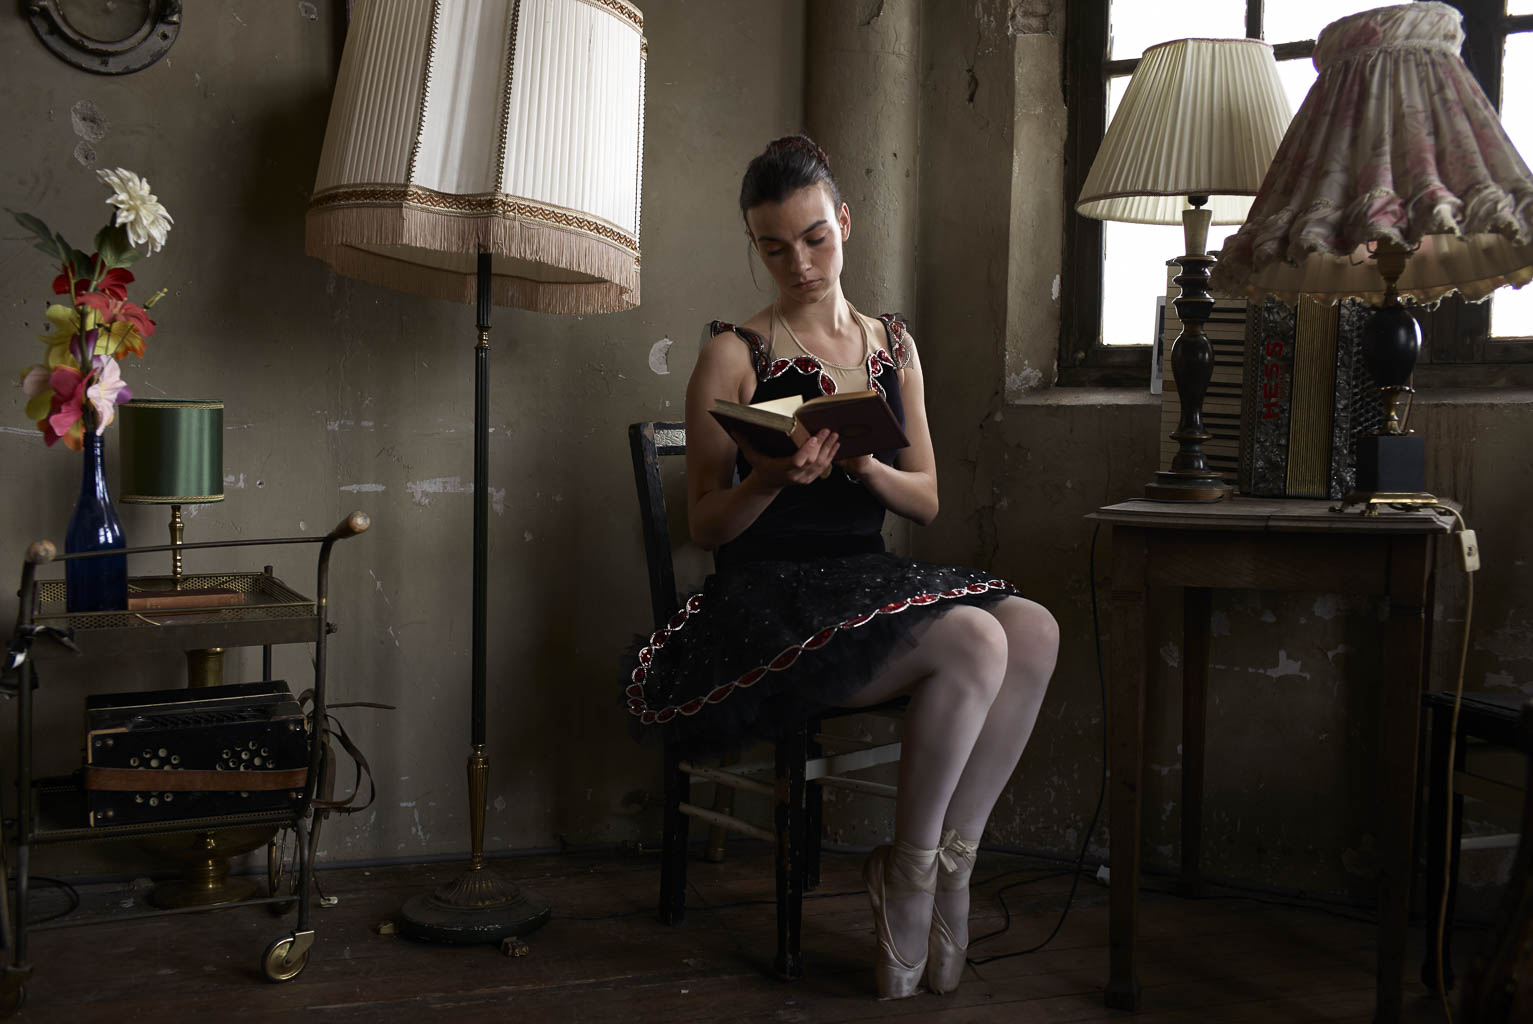 Ballerina ballet photography Leica M ballerina in room reading